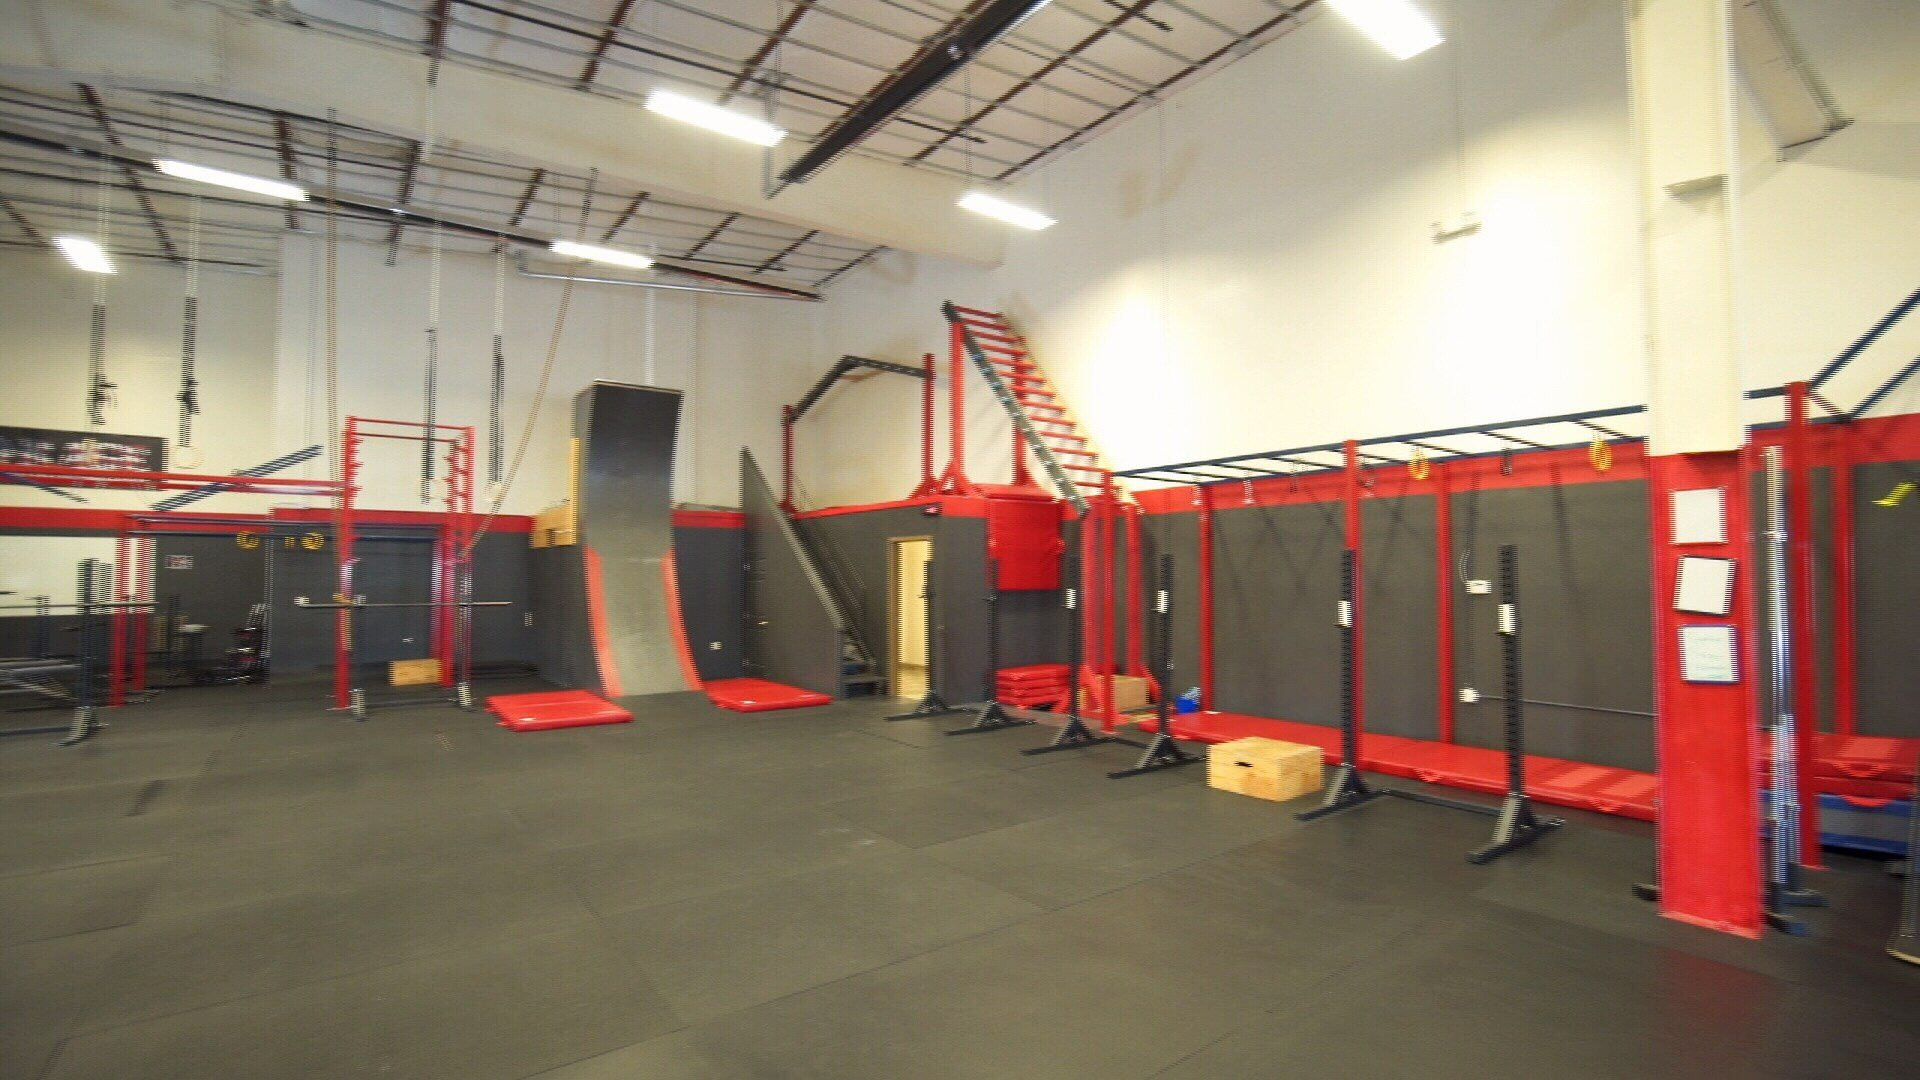 Altrain Fitness incorporates obstacle course into training (MTN News/Brandon Sullivan Photo)